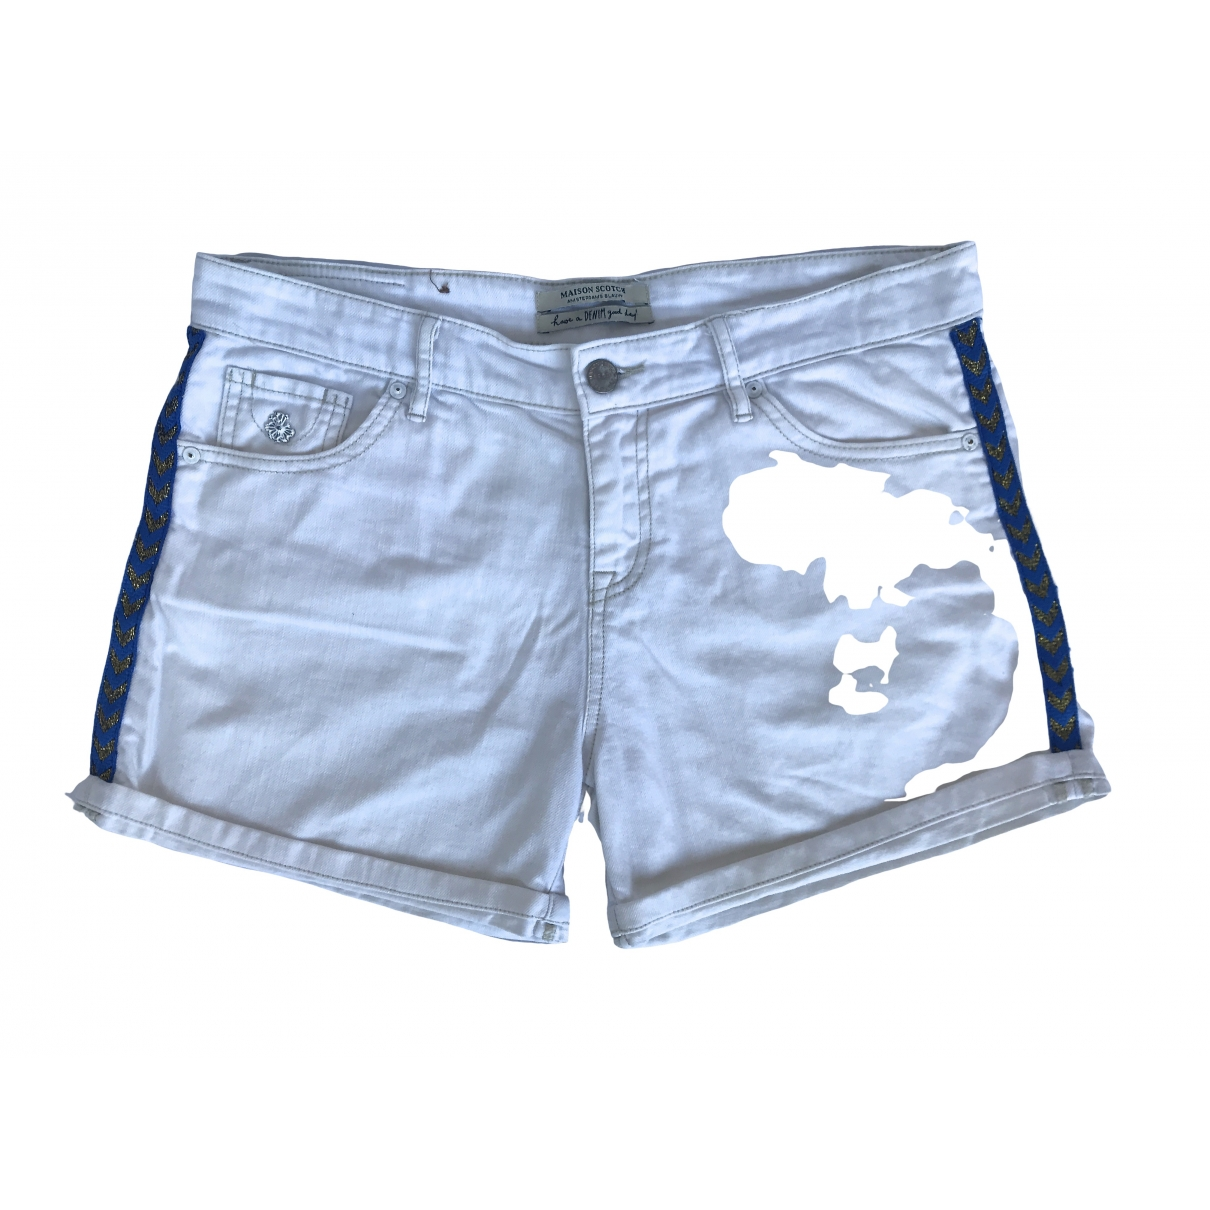 Maison Scotch \N White Cotton Shorts for Women M International